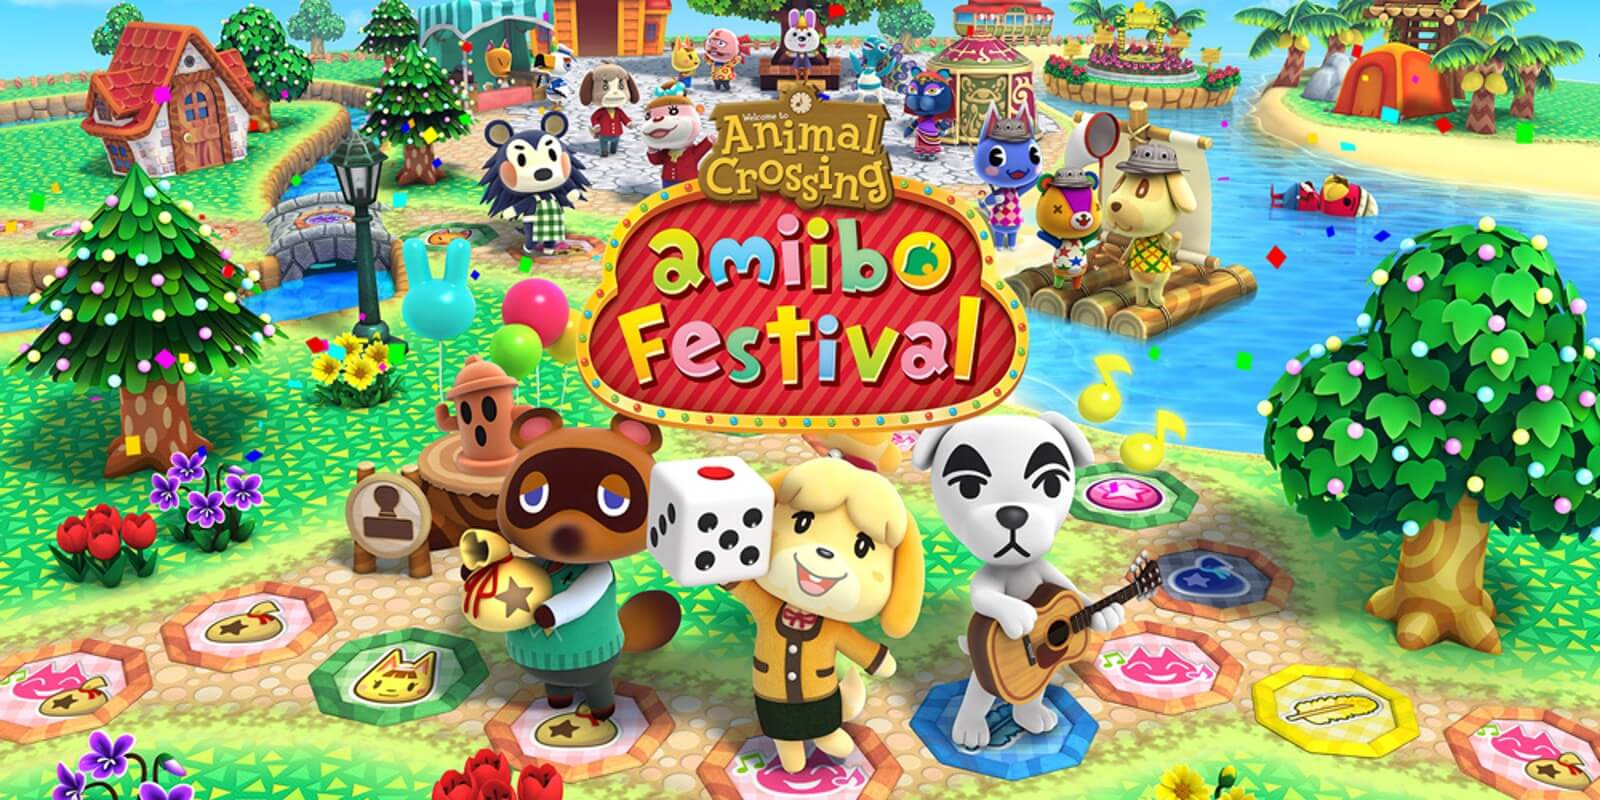 Isabelle, tom nook e toda a turma do animal crossing no nintendo switch? Seria inesquecível!